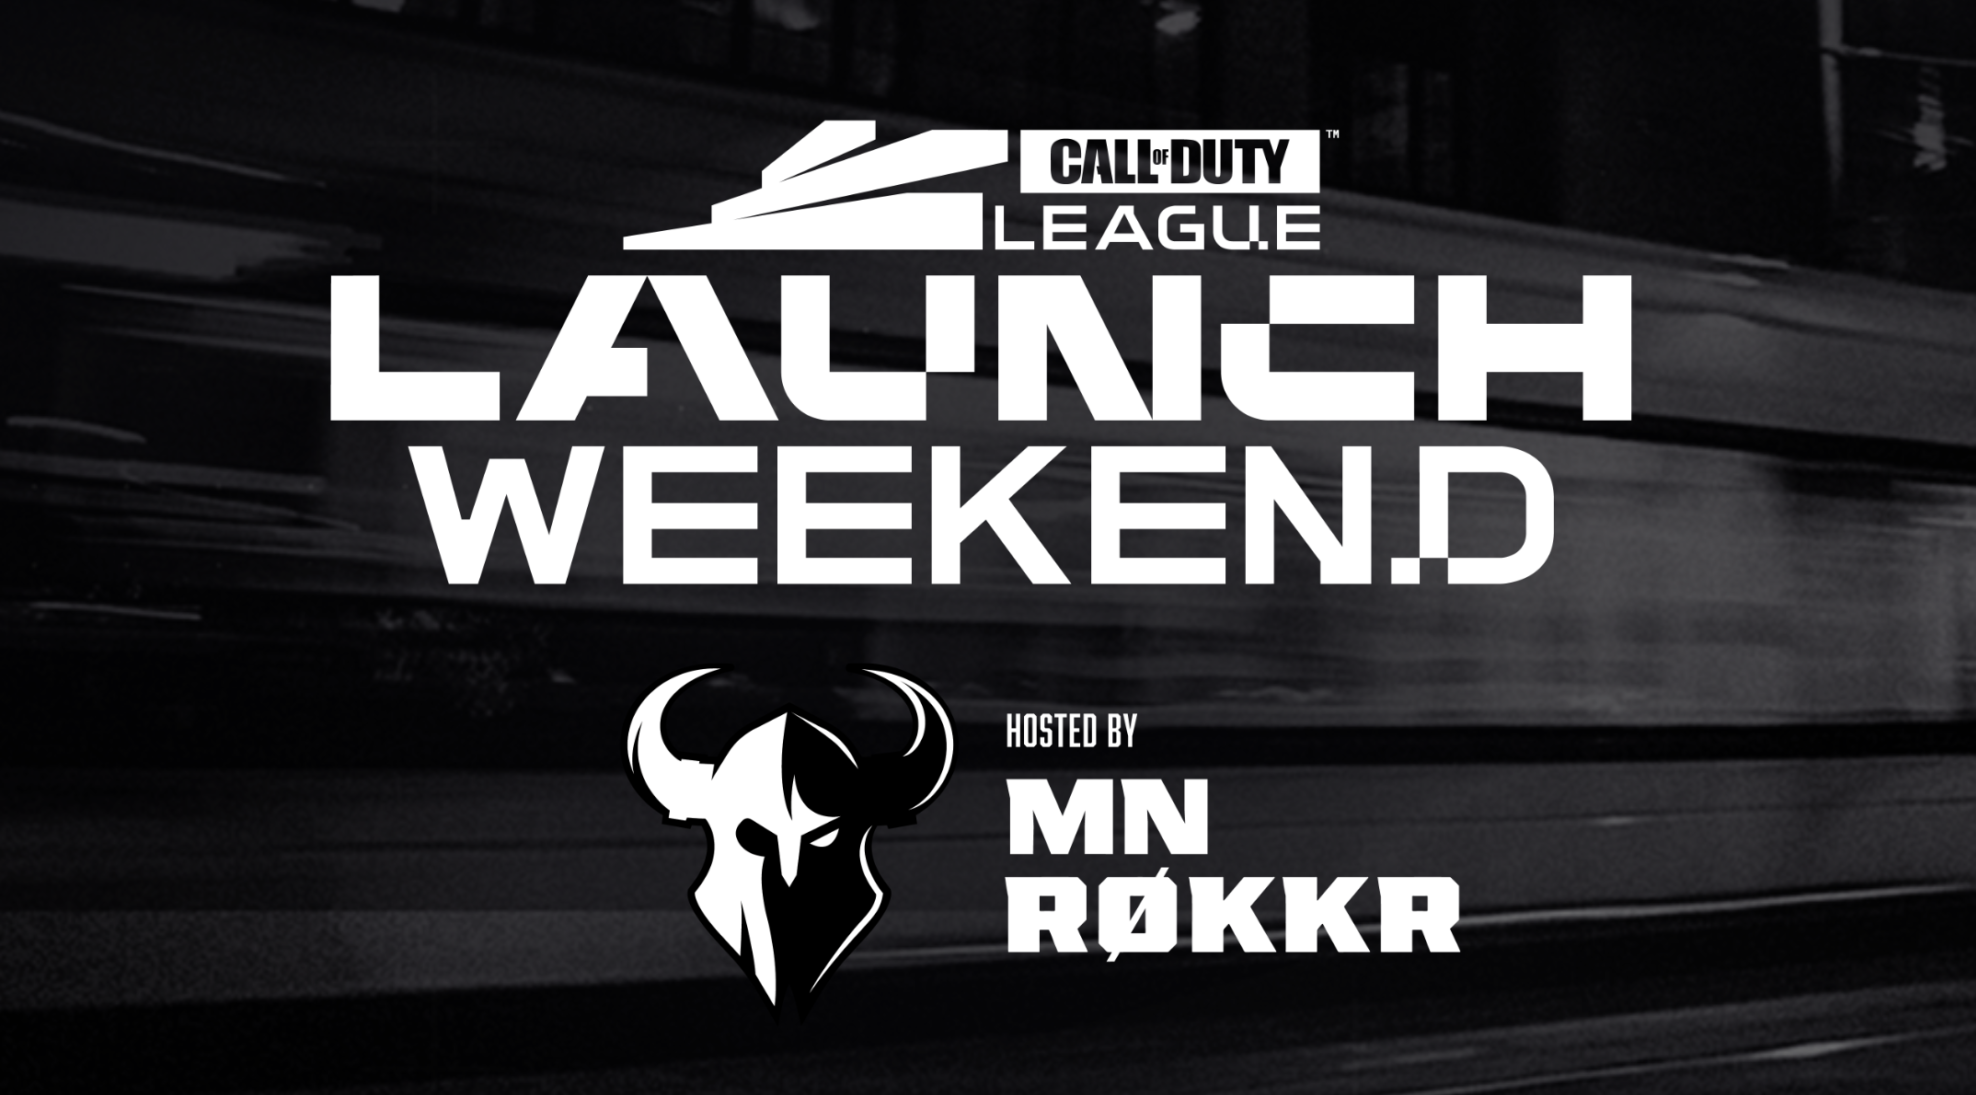 Minnesota ROKKR will host the launch weekend of the CDL.